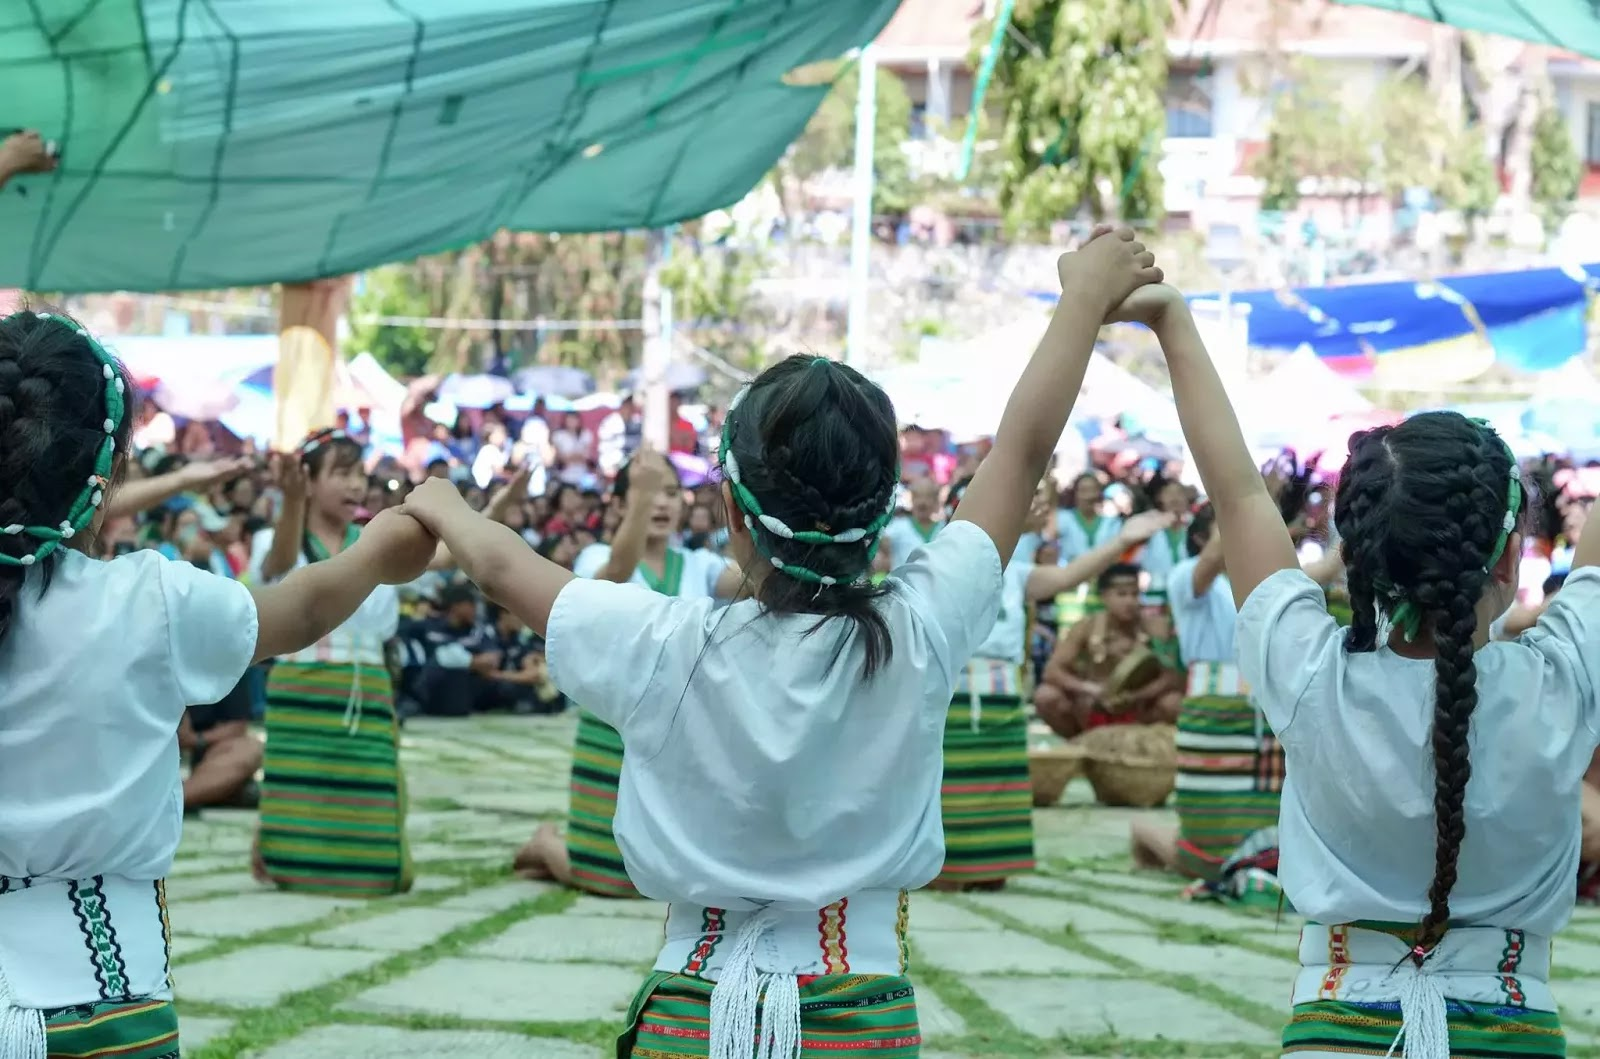 Ethno Indigenous Cooperation and Unity 13th Lang-Ay Festival Bontoc Mountain Province Cordillera Administrative Region Philippines